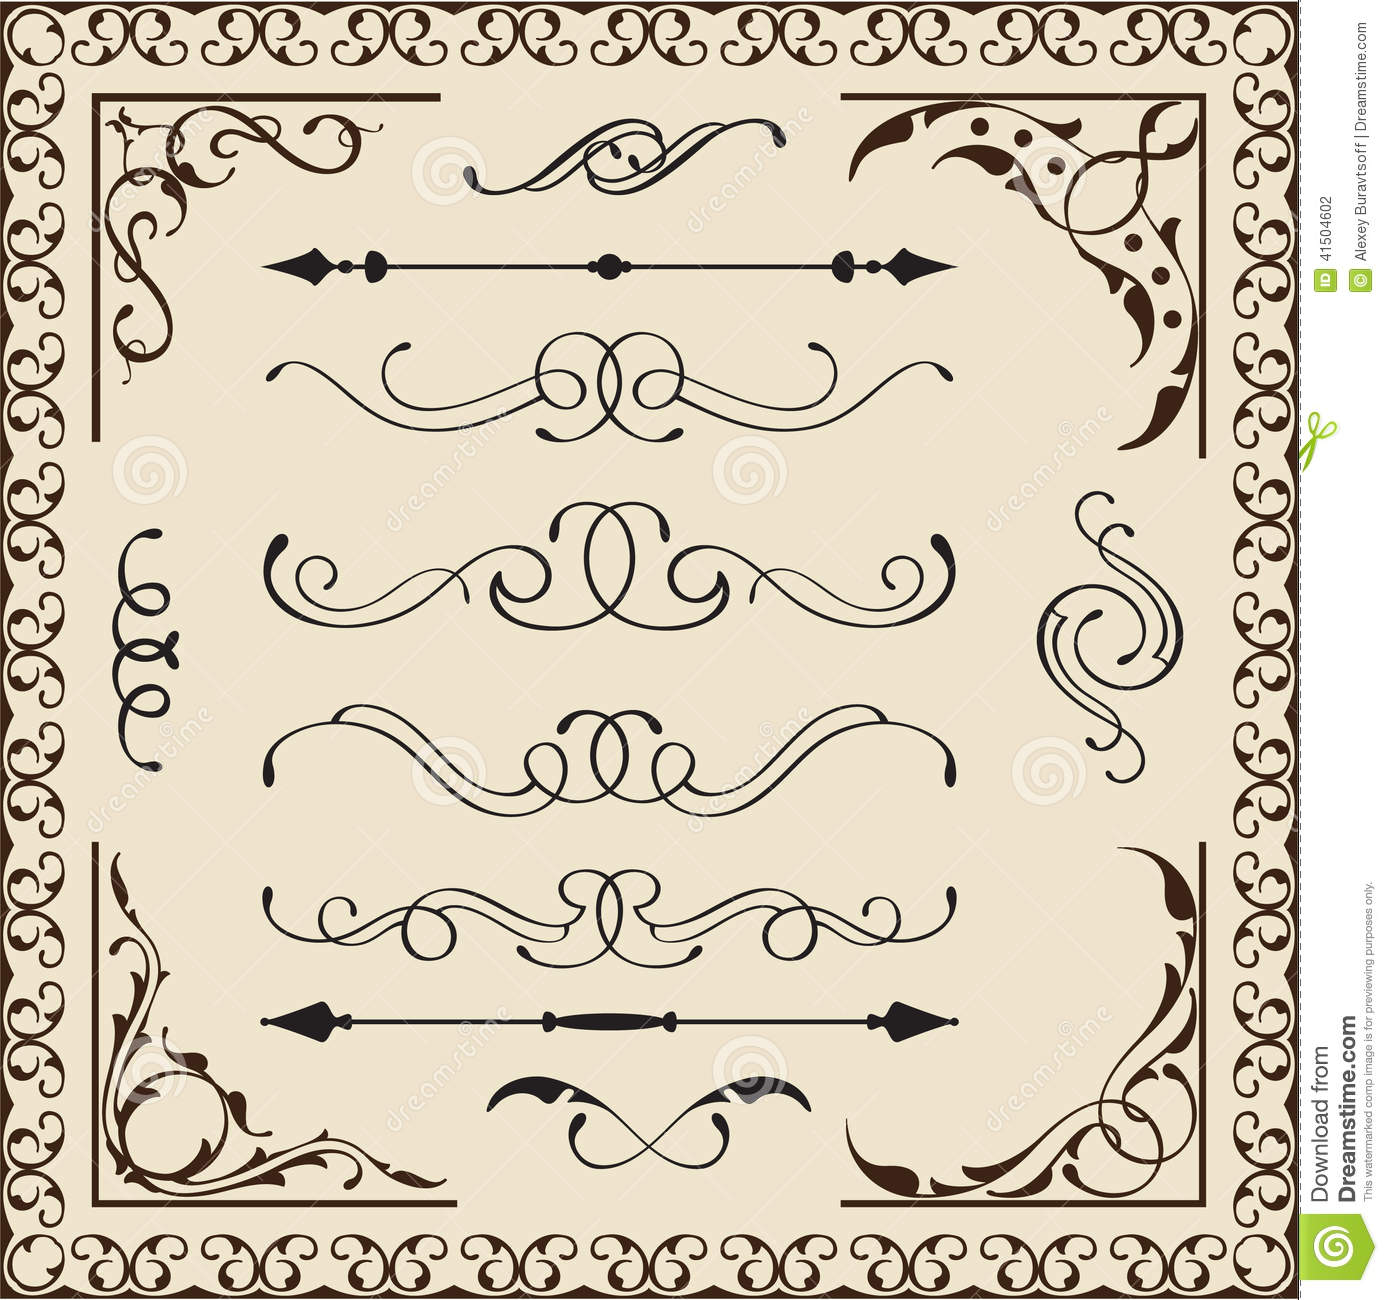 Antique Calligraphy: Set Of Calligraphy Elements Stock Illustration